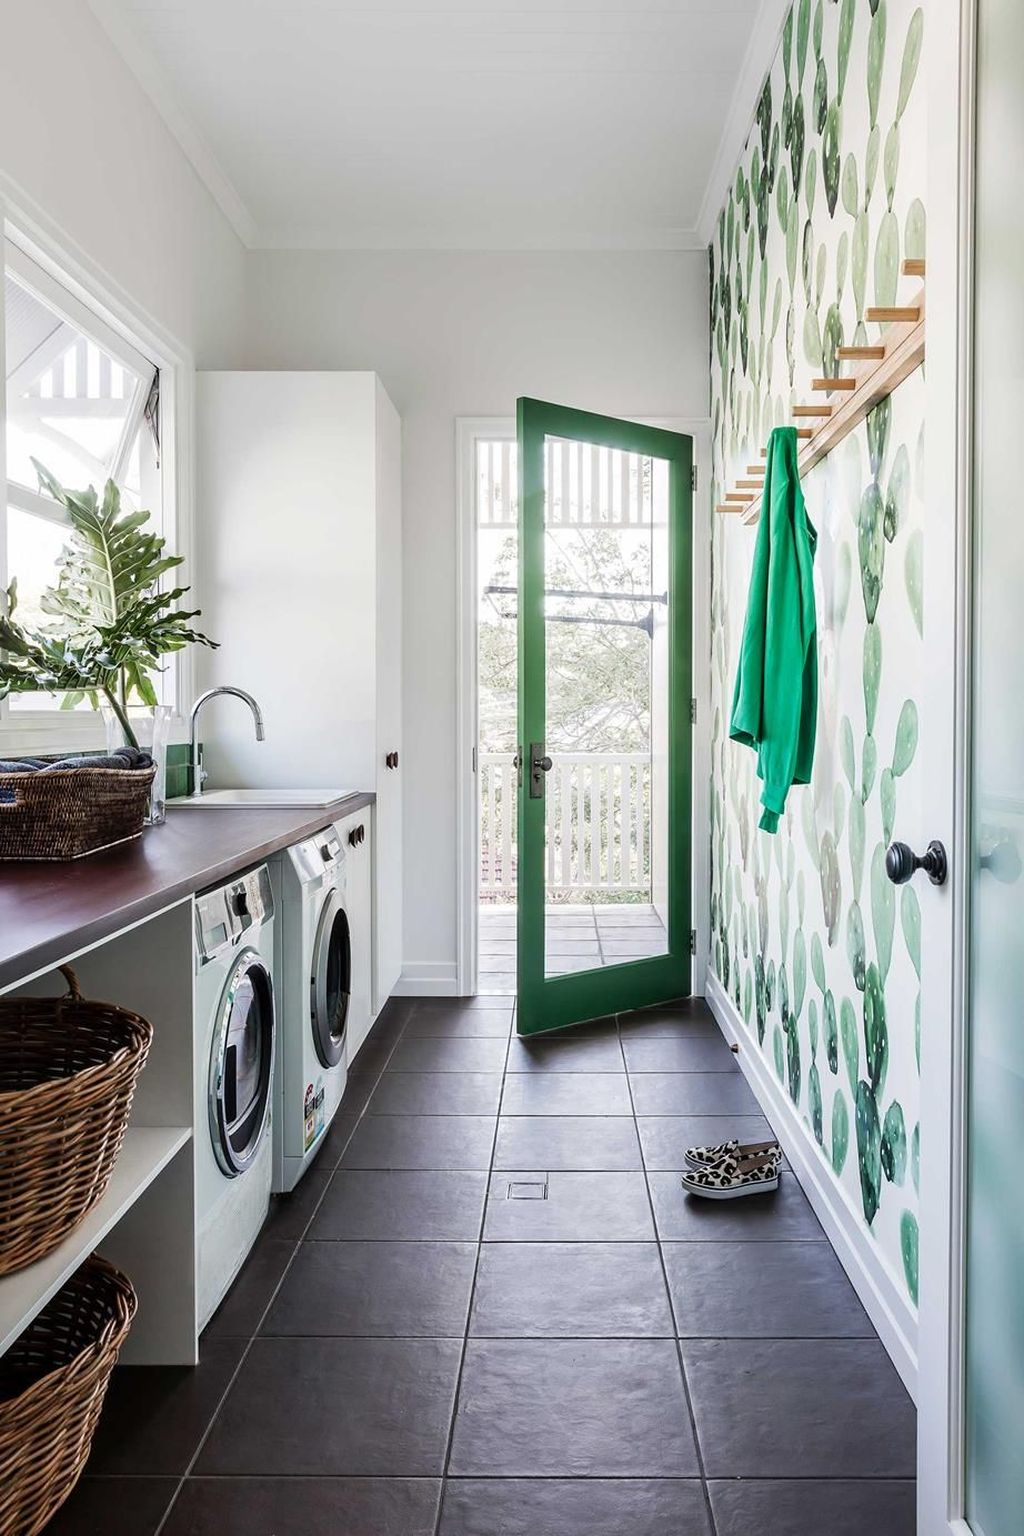 Inspiring Small Laundry Room Design And Decor Ideas 20